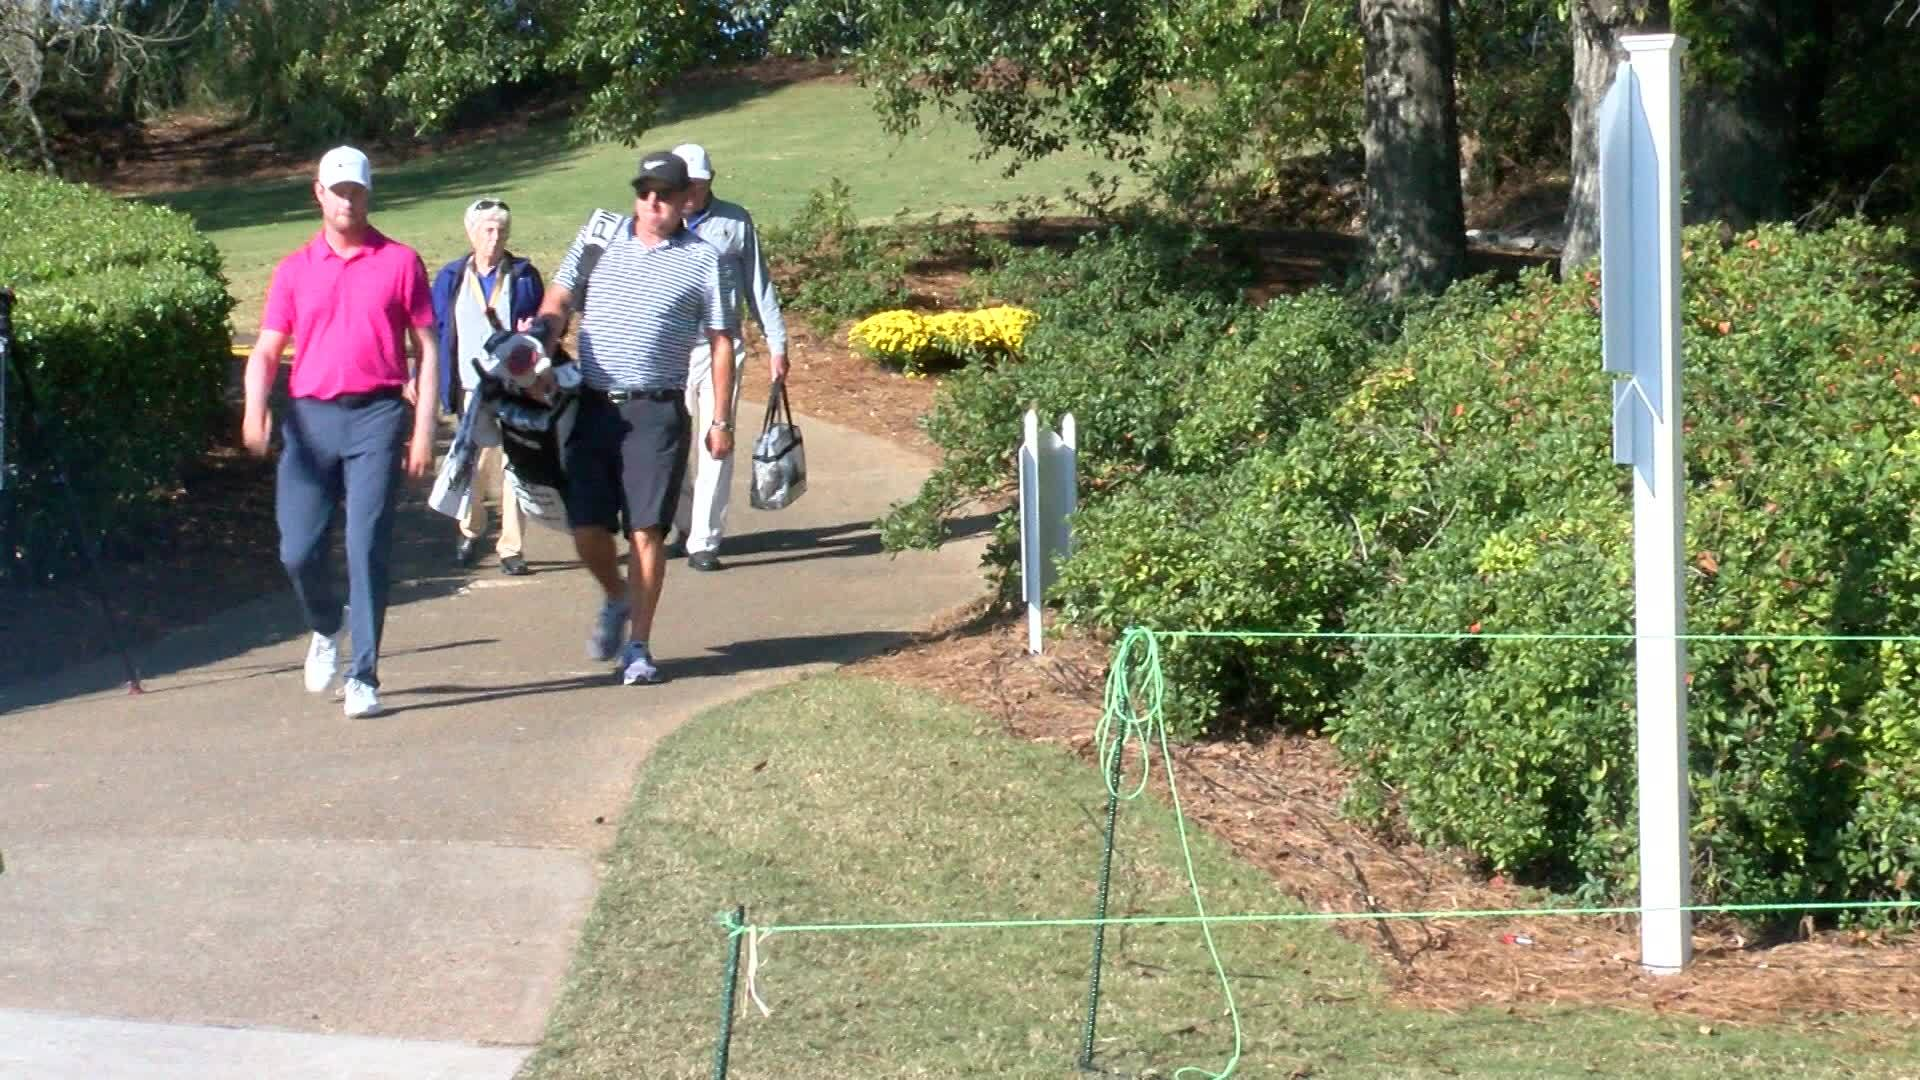 Sanderson_Farms_Championship_wraps_up_in_0_20181028185120